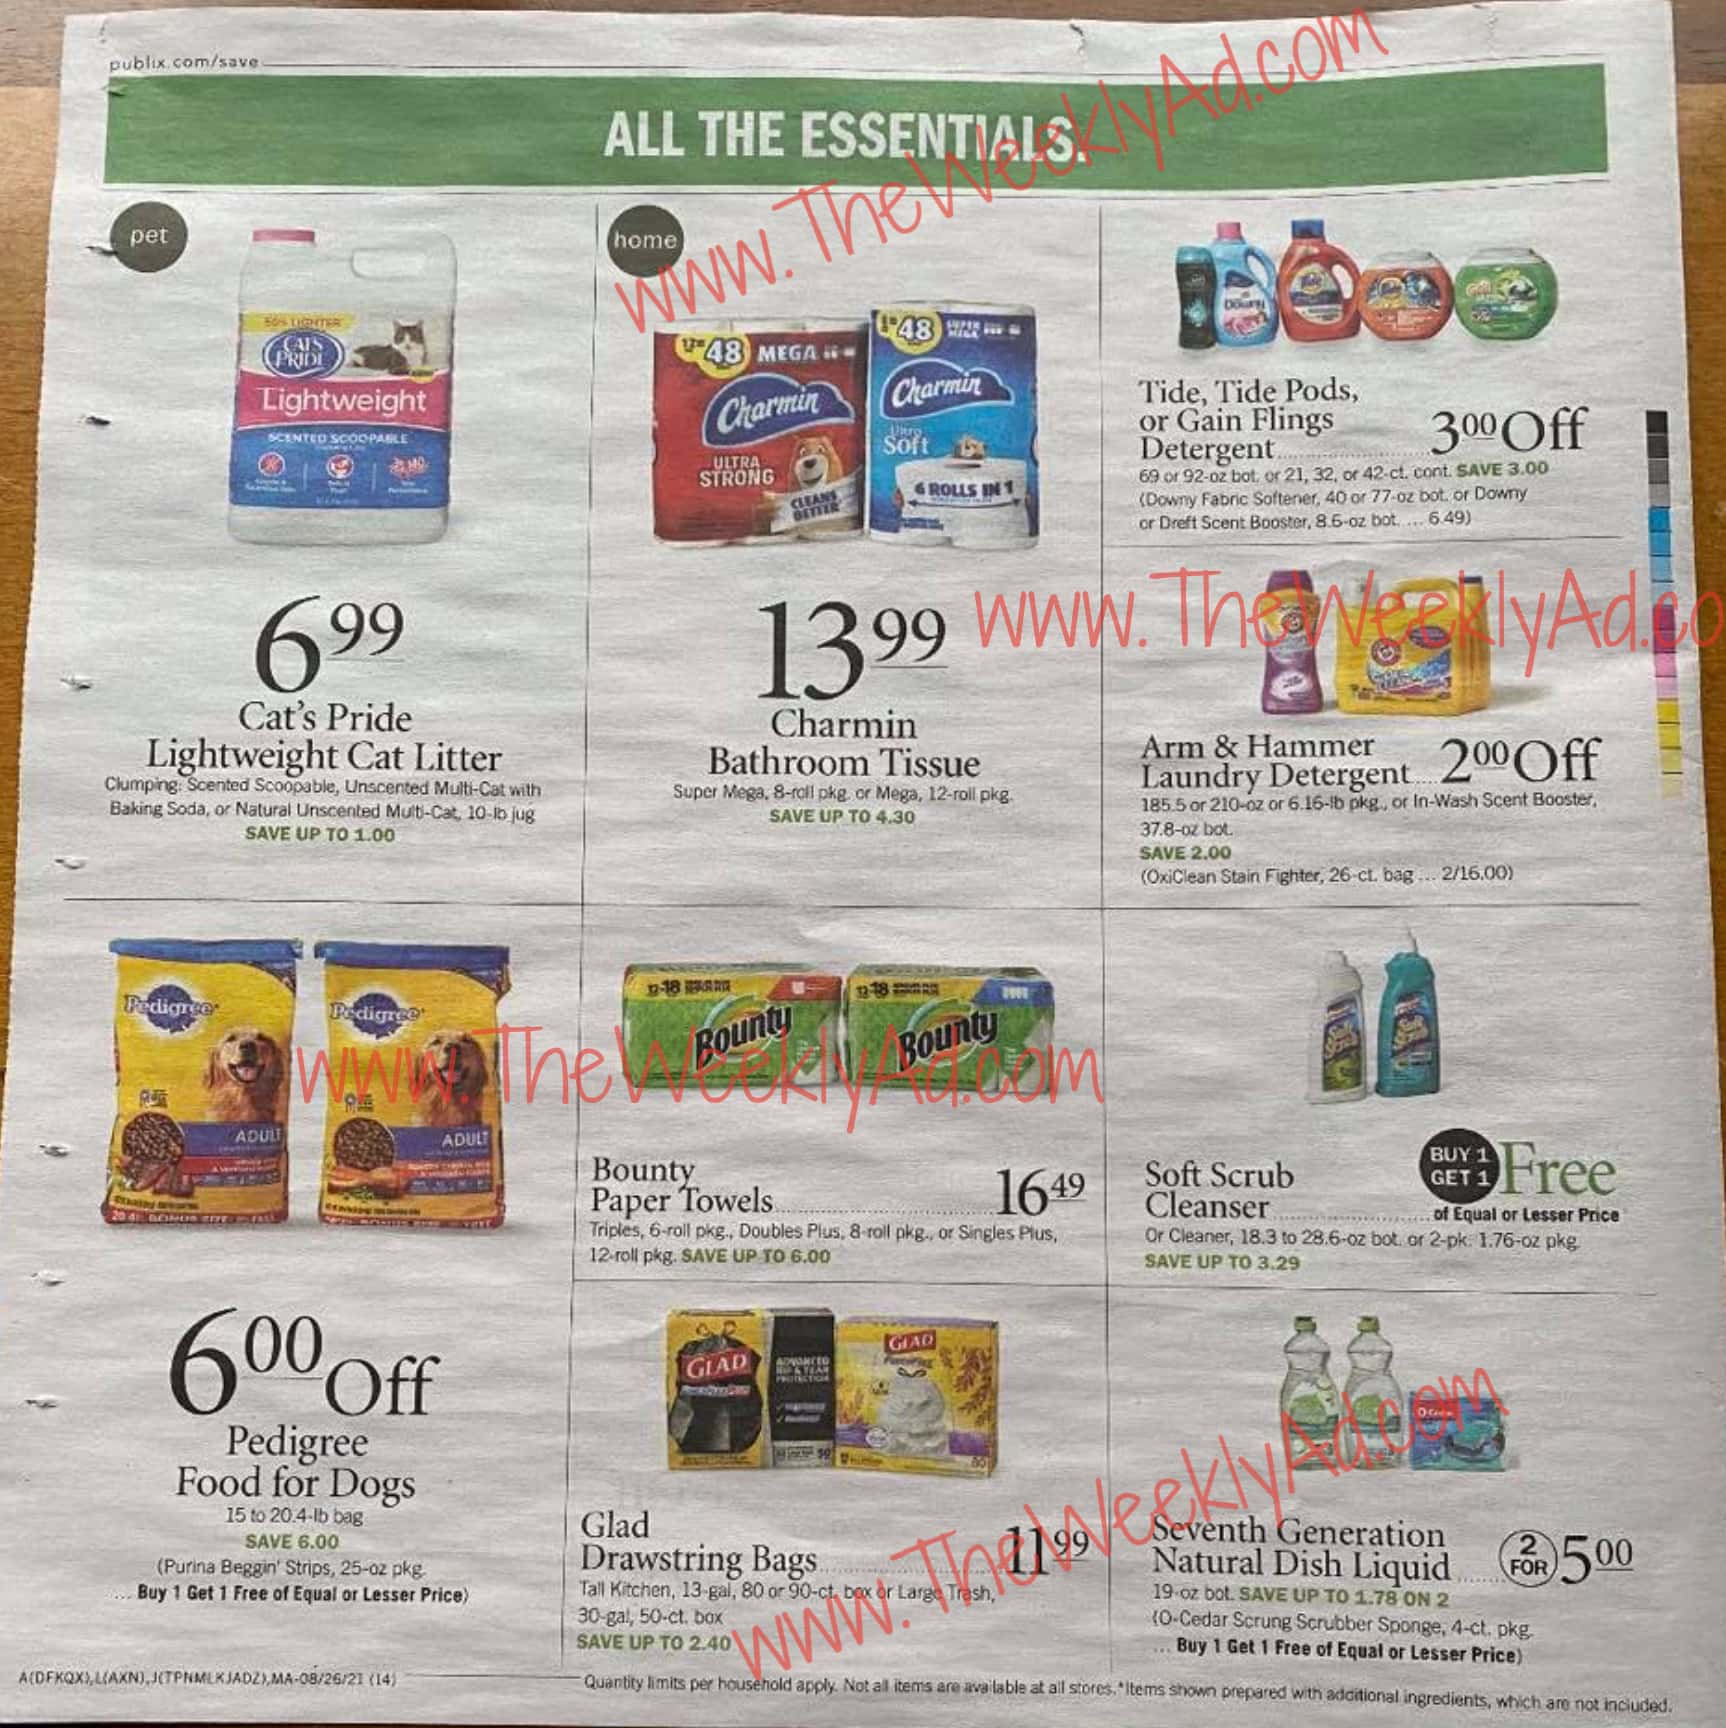 publix_weekly_ad_082521_14